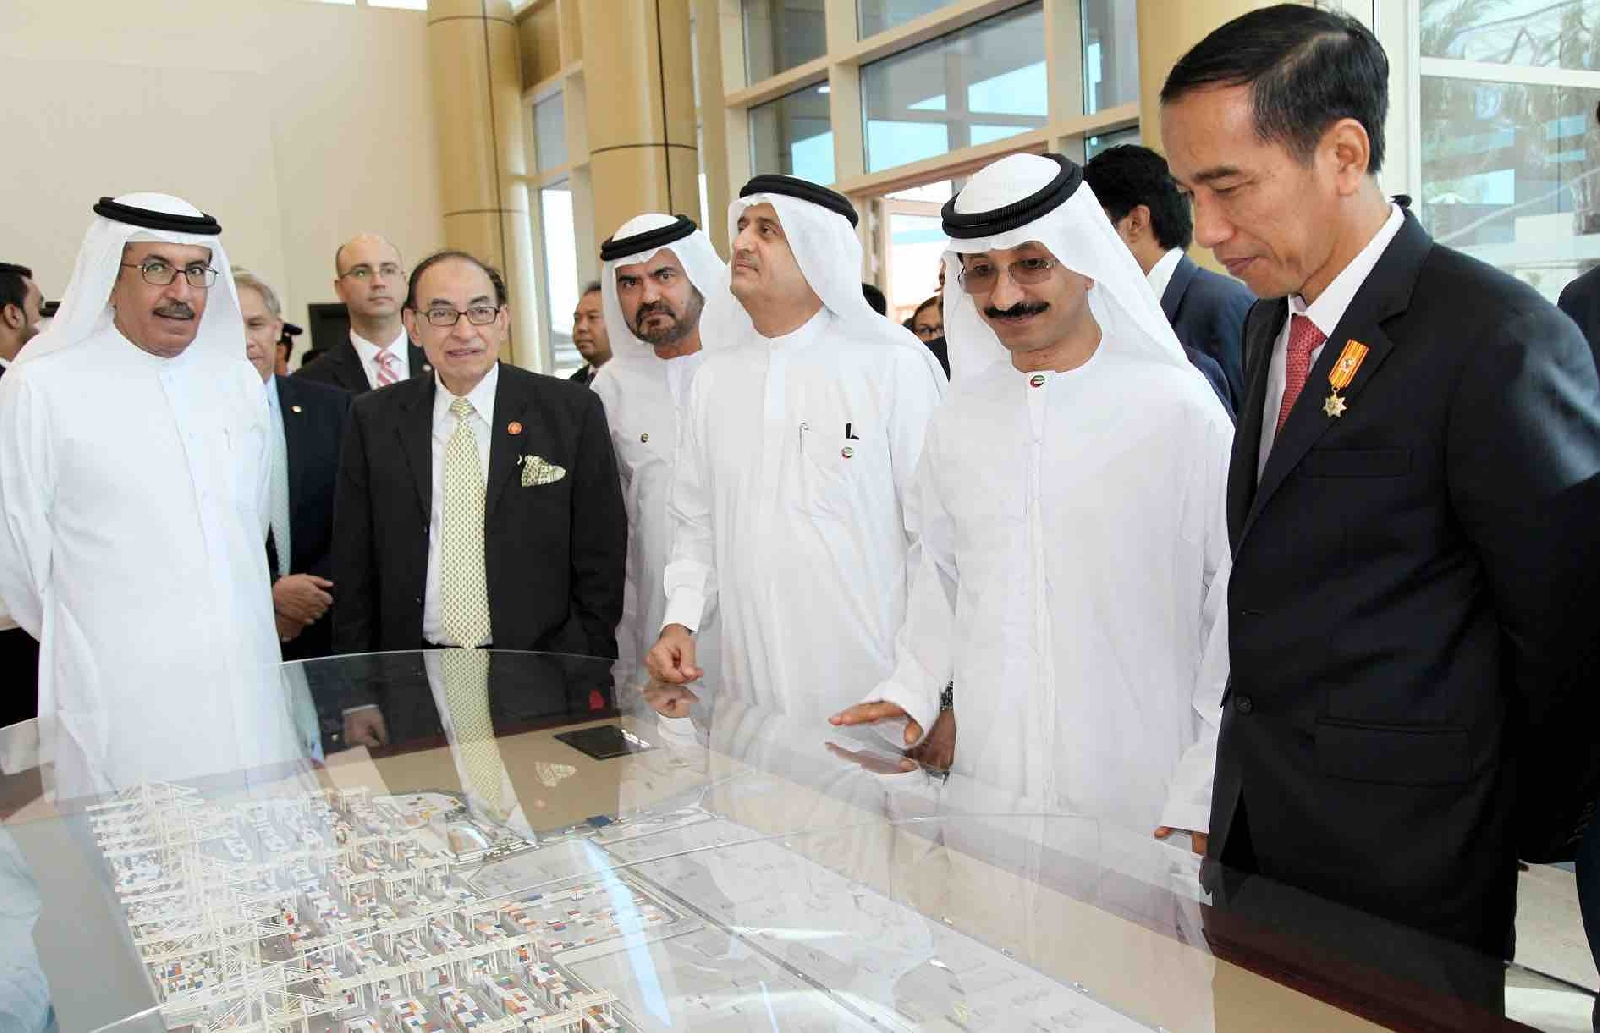 Indonesian president tours DP World's Jebel Ali to cement ties